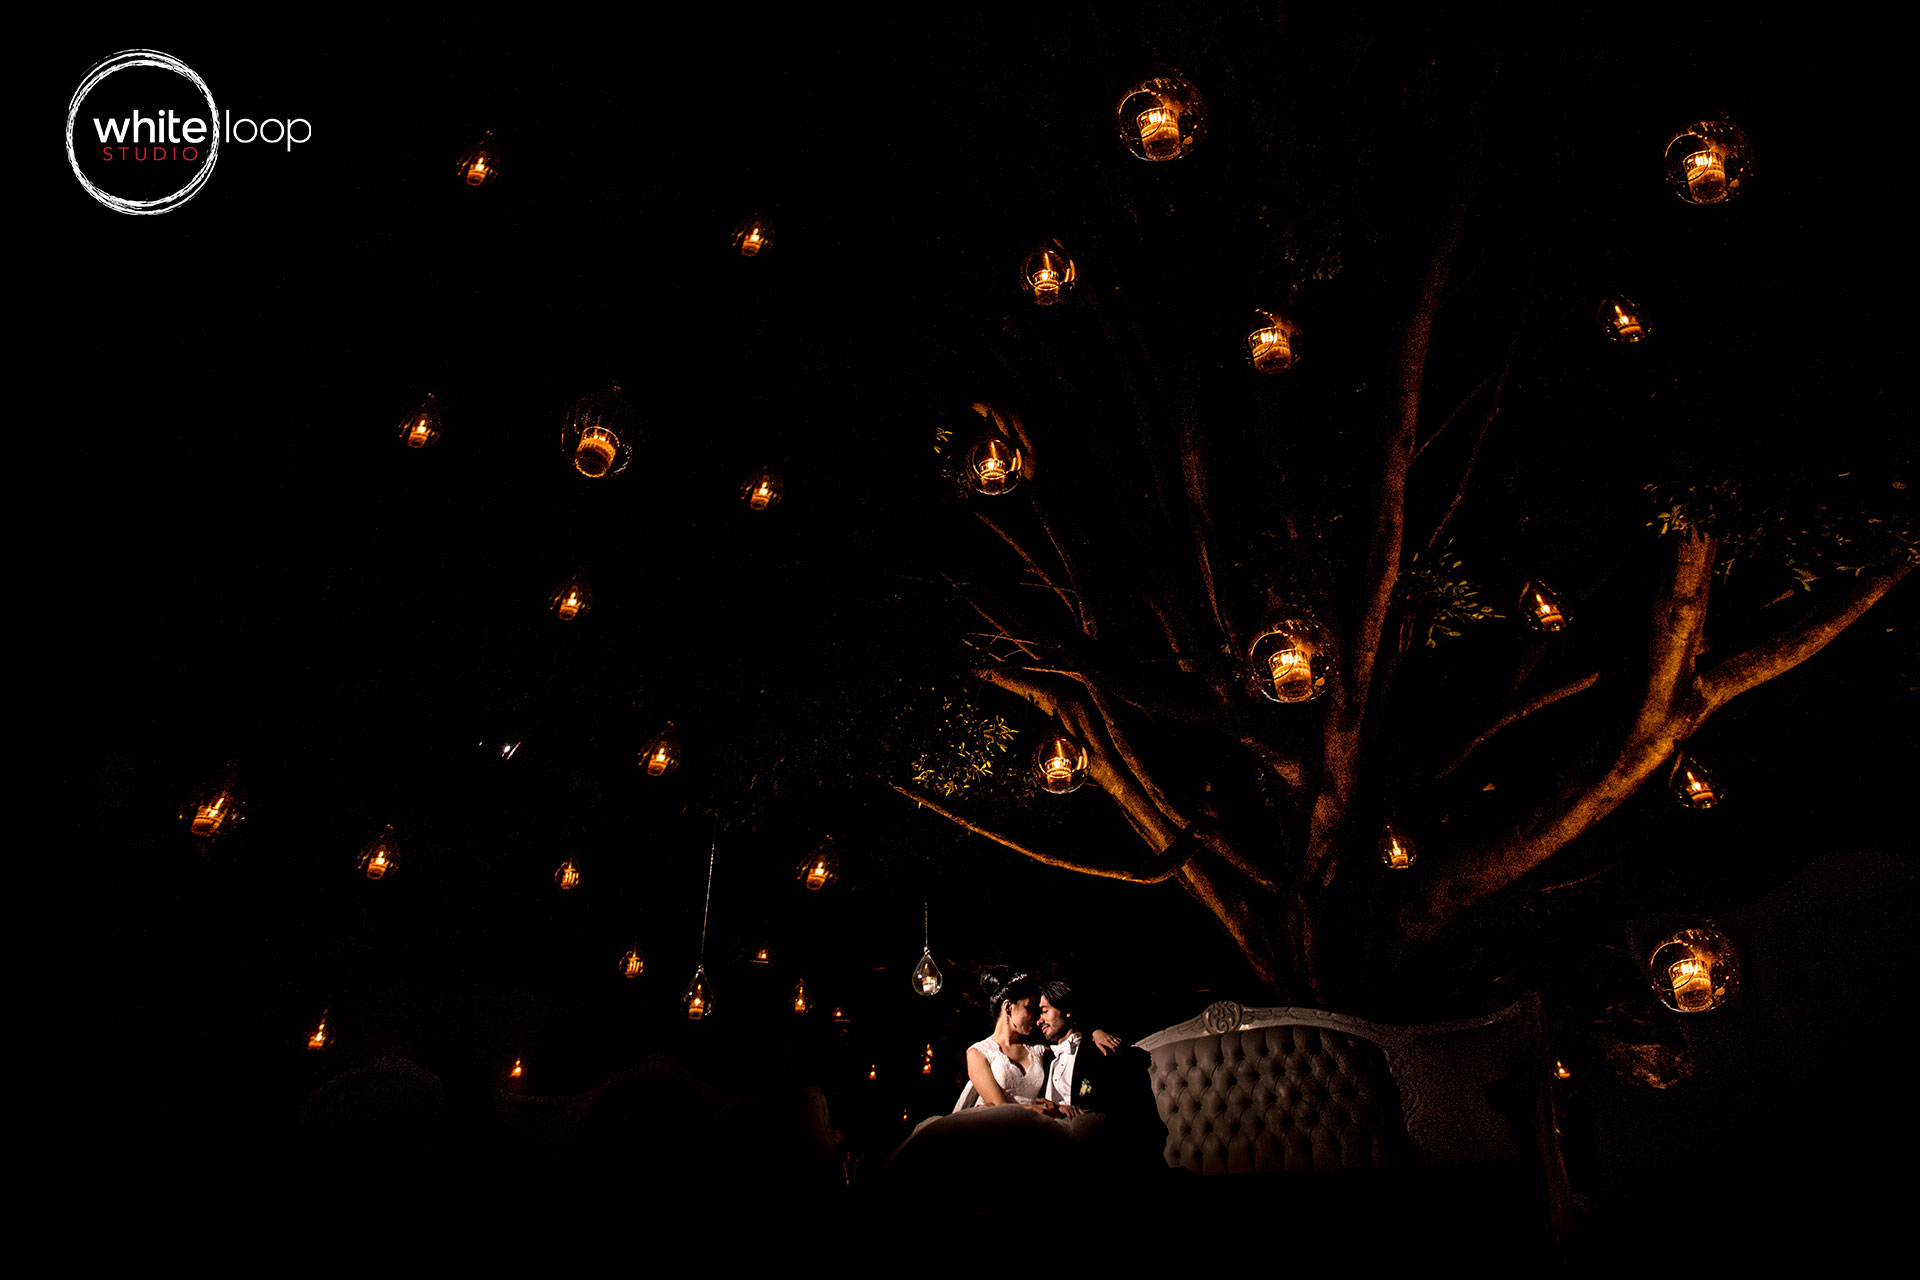 The bride and groom sitting under a full of lights hanging from tree branches, illuminating the couple with a flash to highlight their presence.